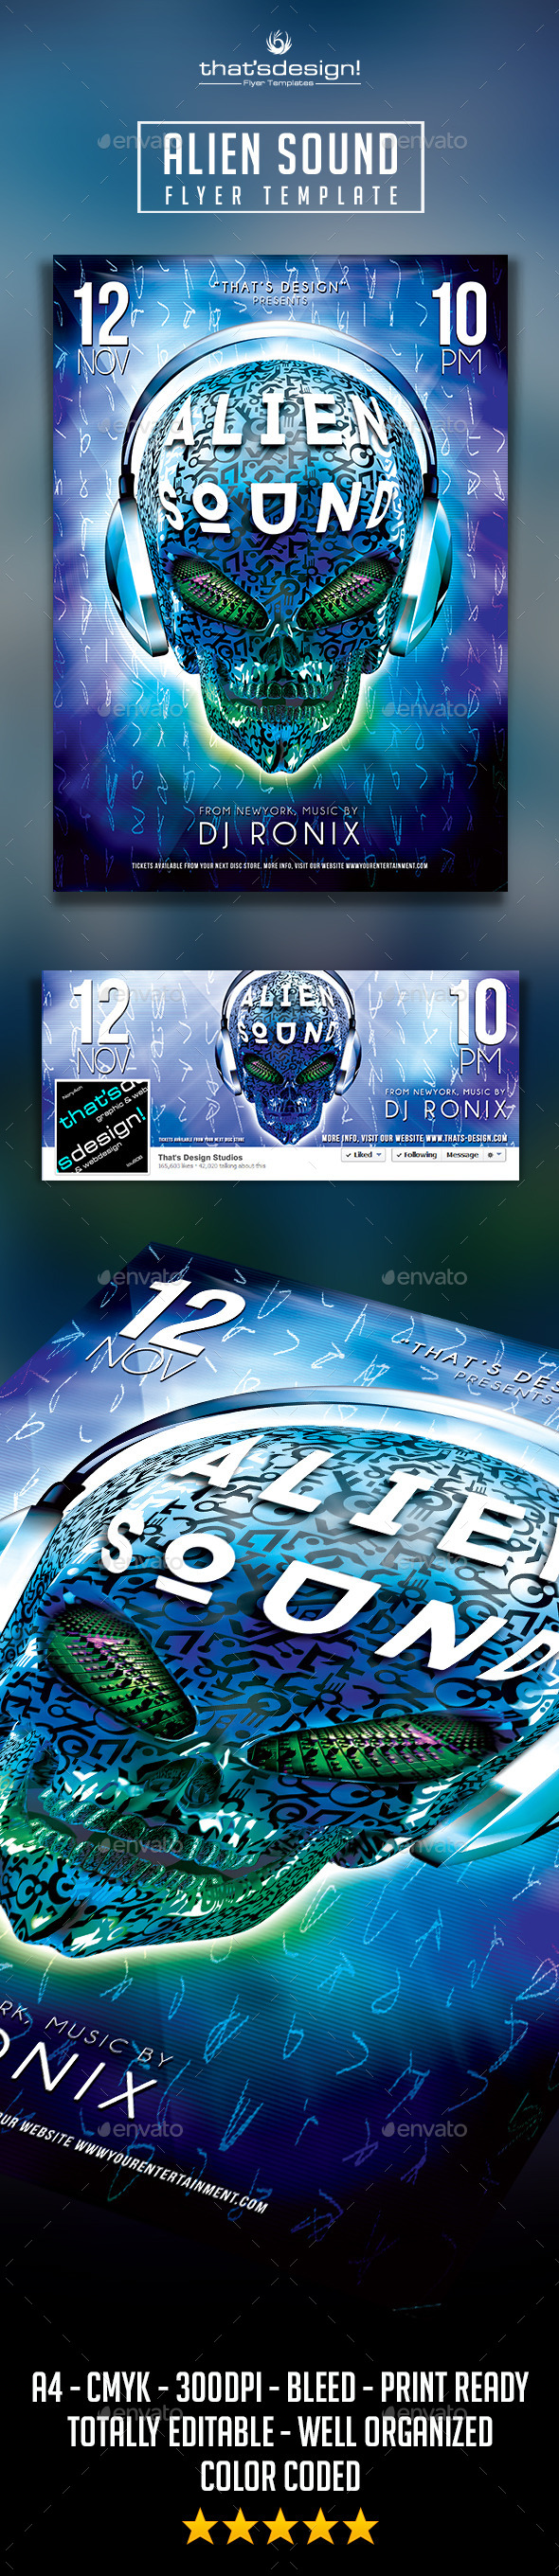 Alien Sound Flyer Template - Clubs & Parties Events